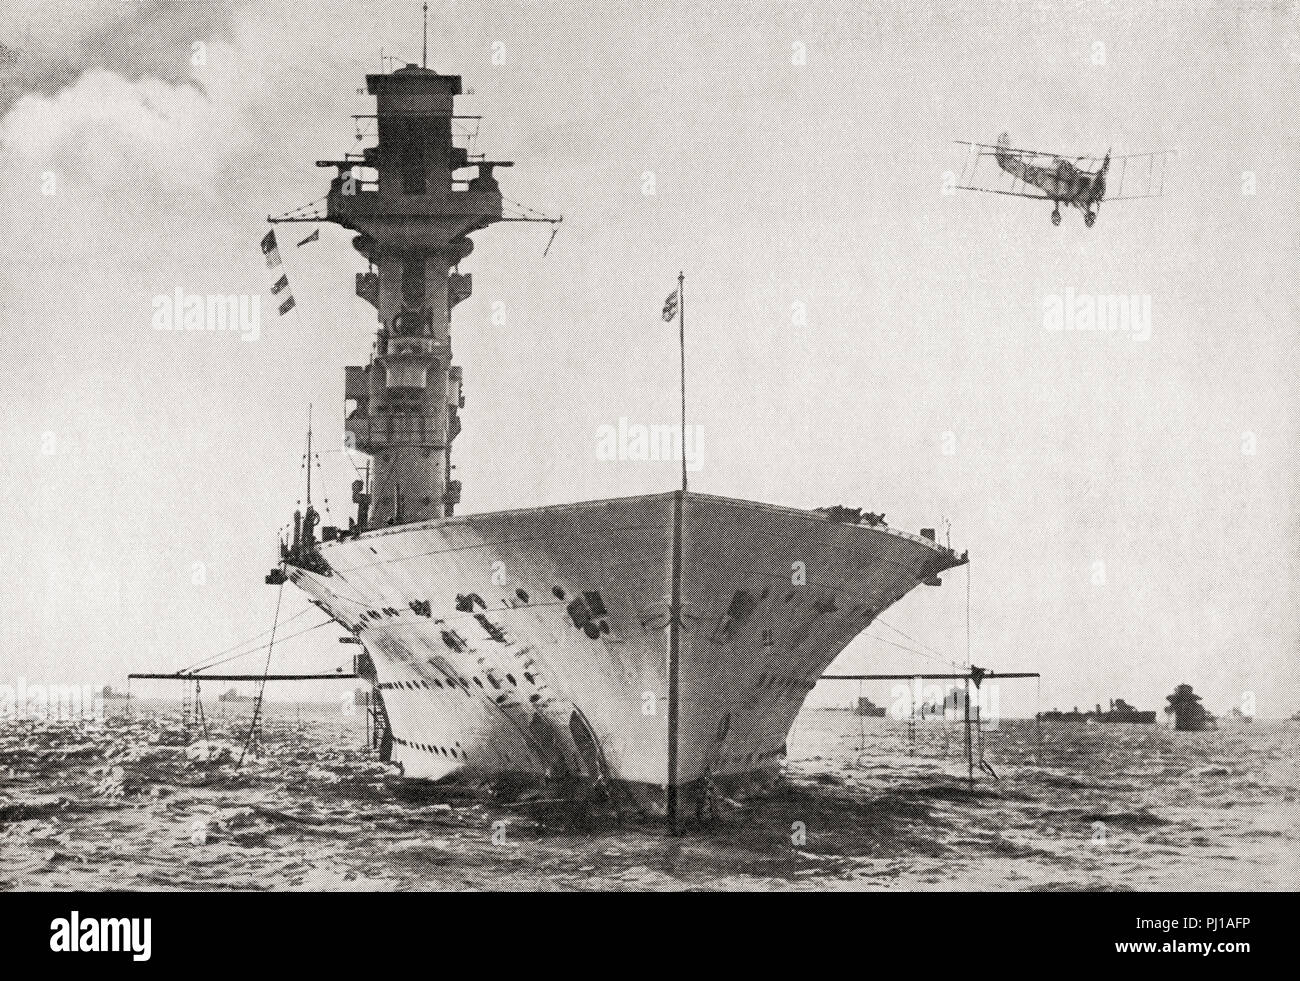 HMS Hermes, a British aircraft carrier built for the Royal Navy, the world's first ship to be designed as an aircraft carrier, she was sunk by Japanese aircraft, 9 April 1942.  From The Book of Ships, published c.1920. - Stock Image